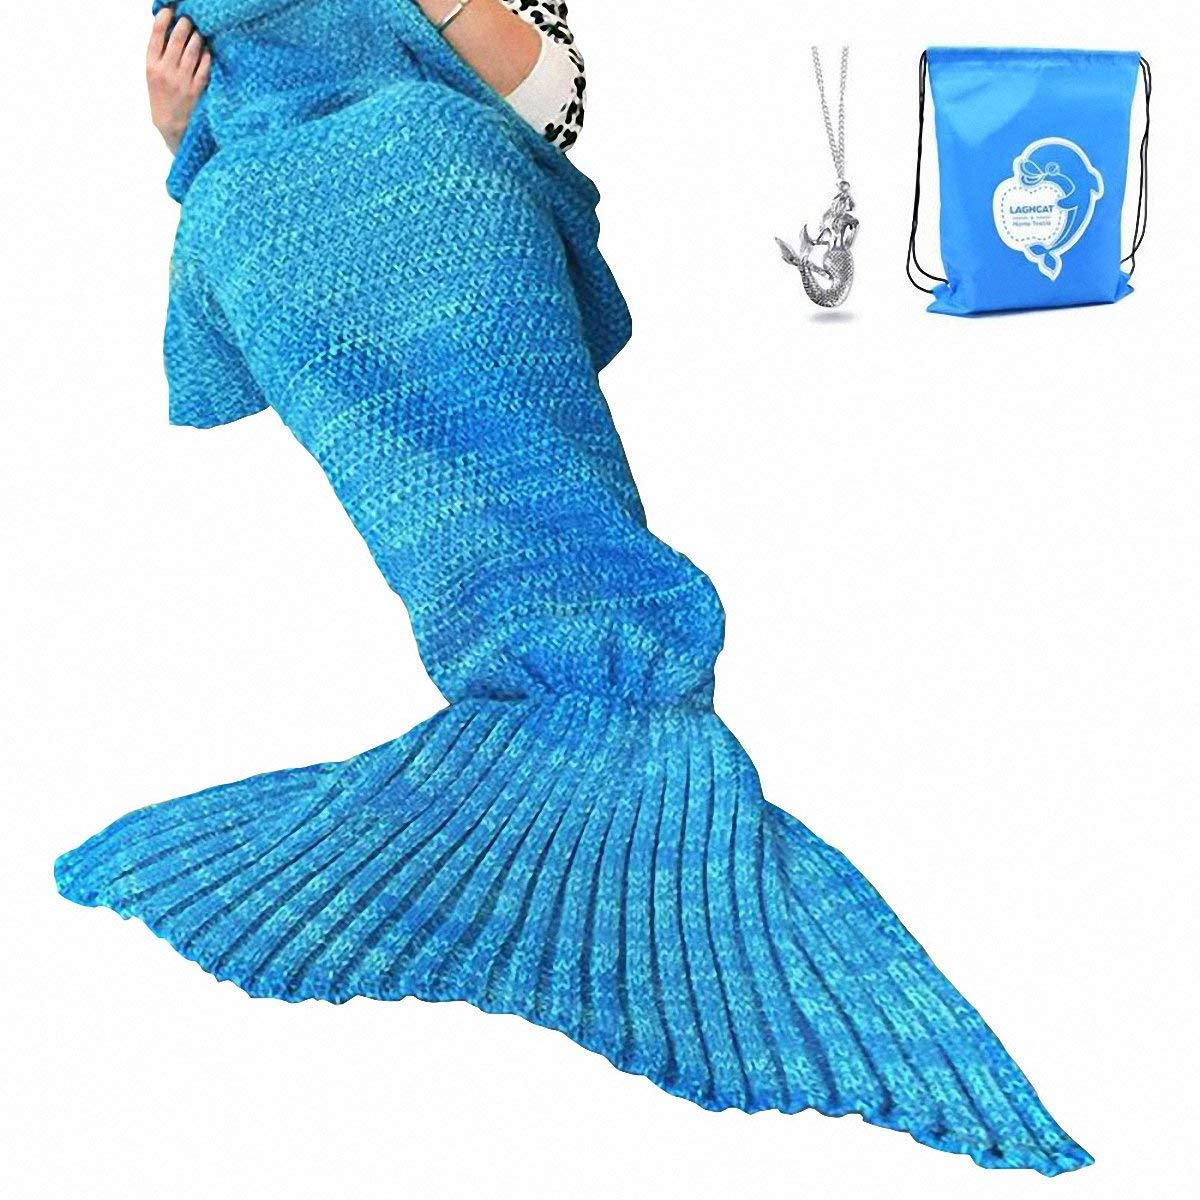 b9092d9f4ab Amazon.com  LAGHCAT Mermaid Tail Blanket Crochet Mermaid Blanket for Adult